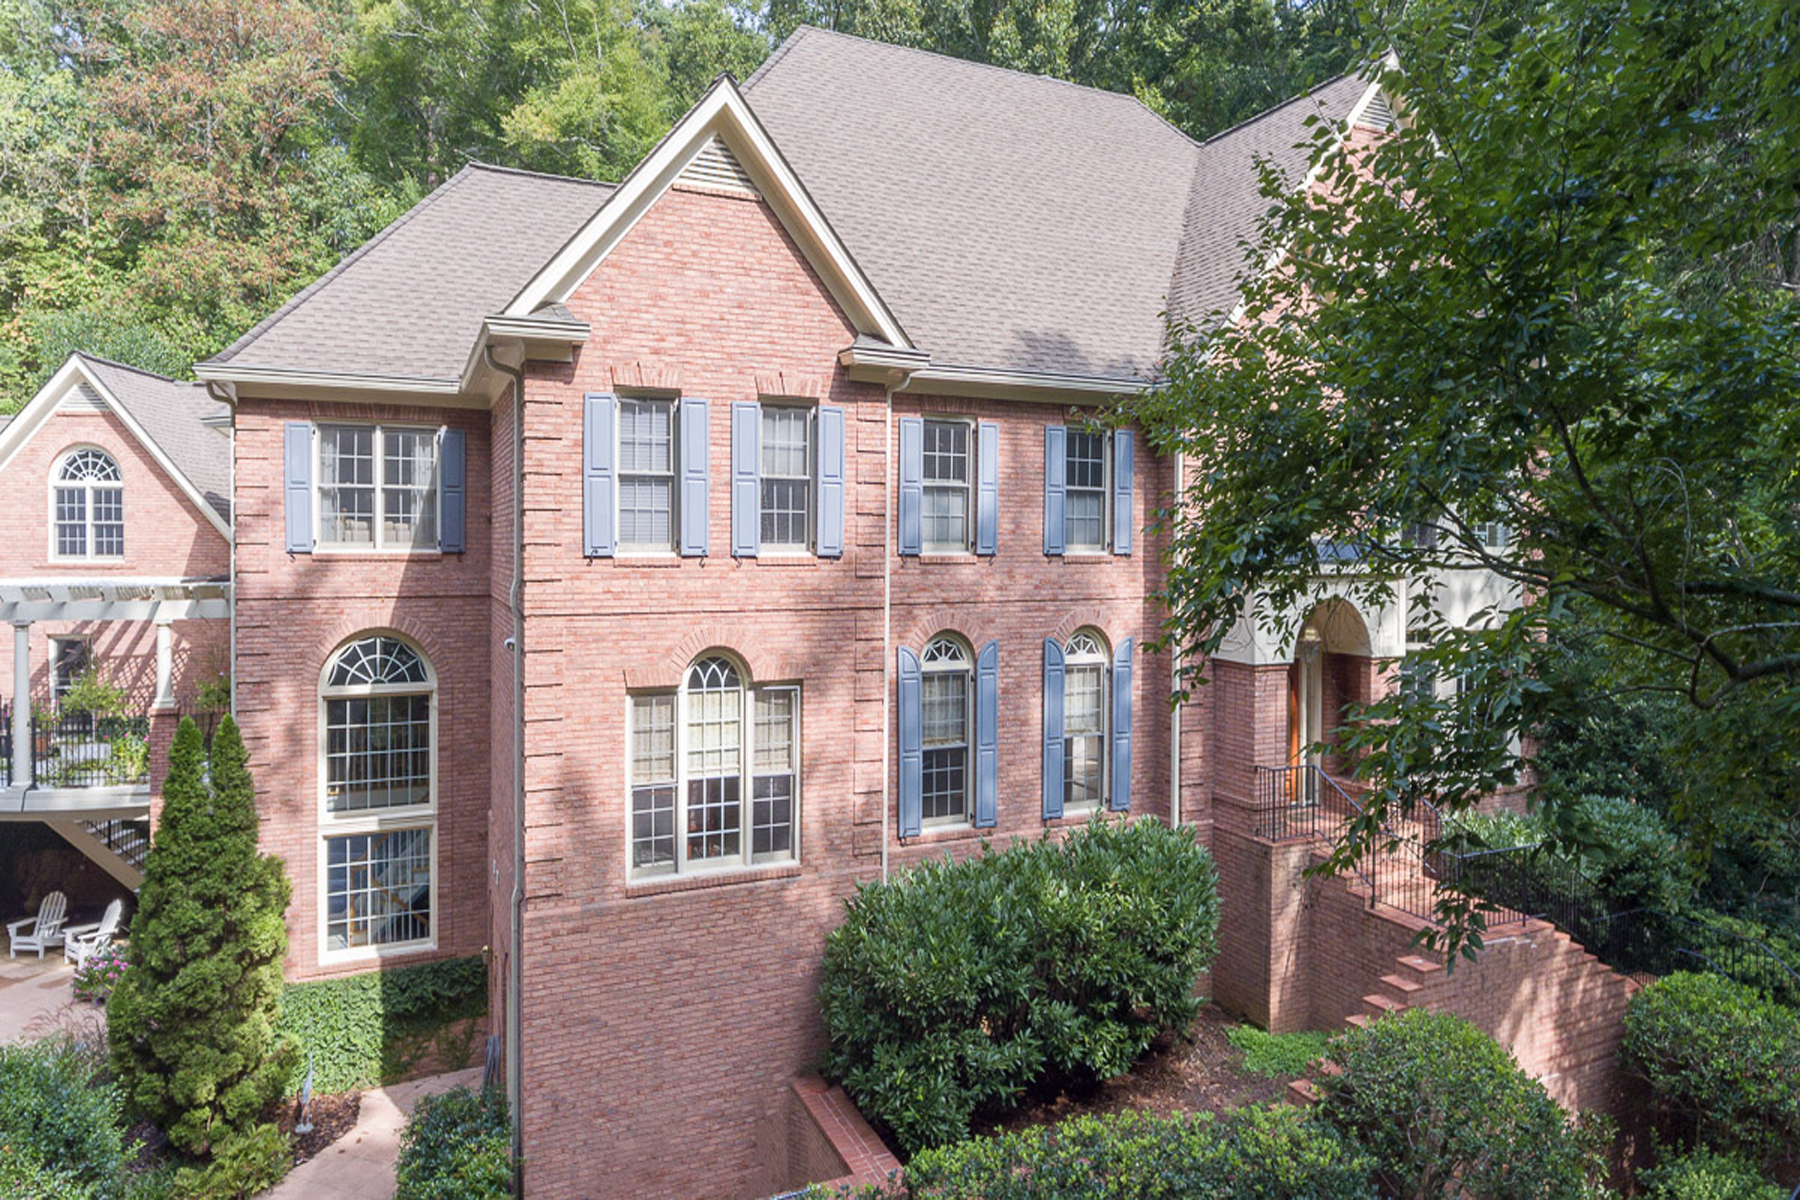 Additional photo for property listing at Amazing Home On Three Wooded Acres Of Privacy And Tranquility 664 Willow Knoll Drive SE Marietta, Georgia 30067 Stati Uniti